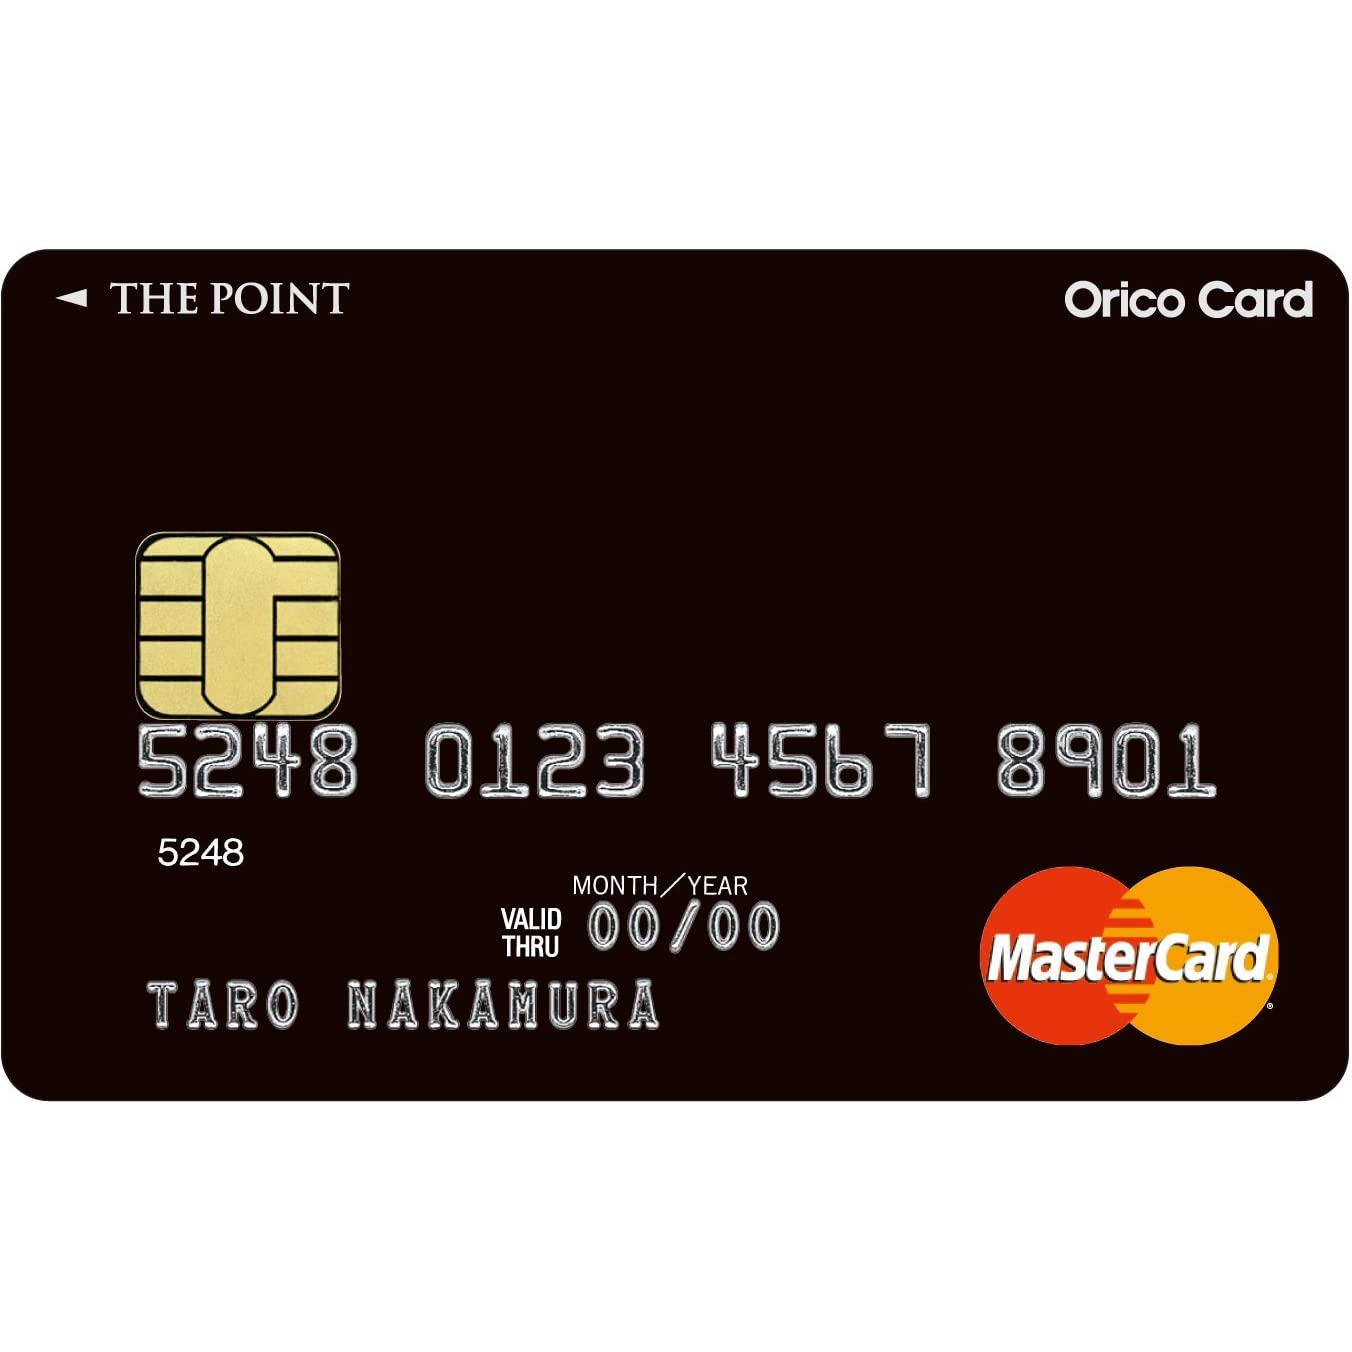 Image-Orico-card-the-point-credit